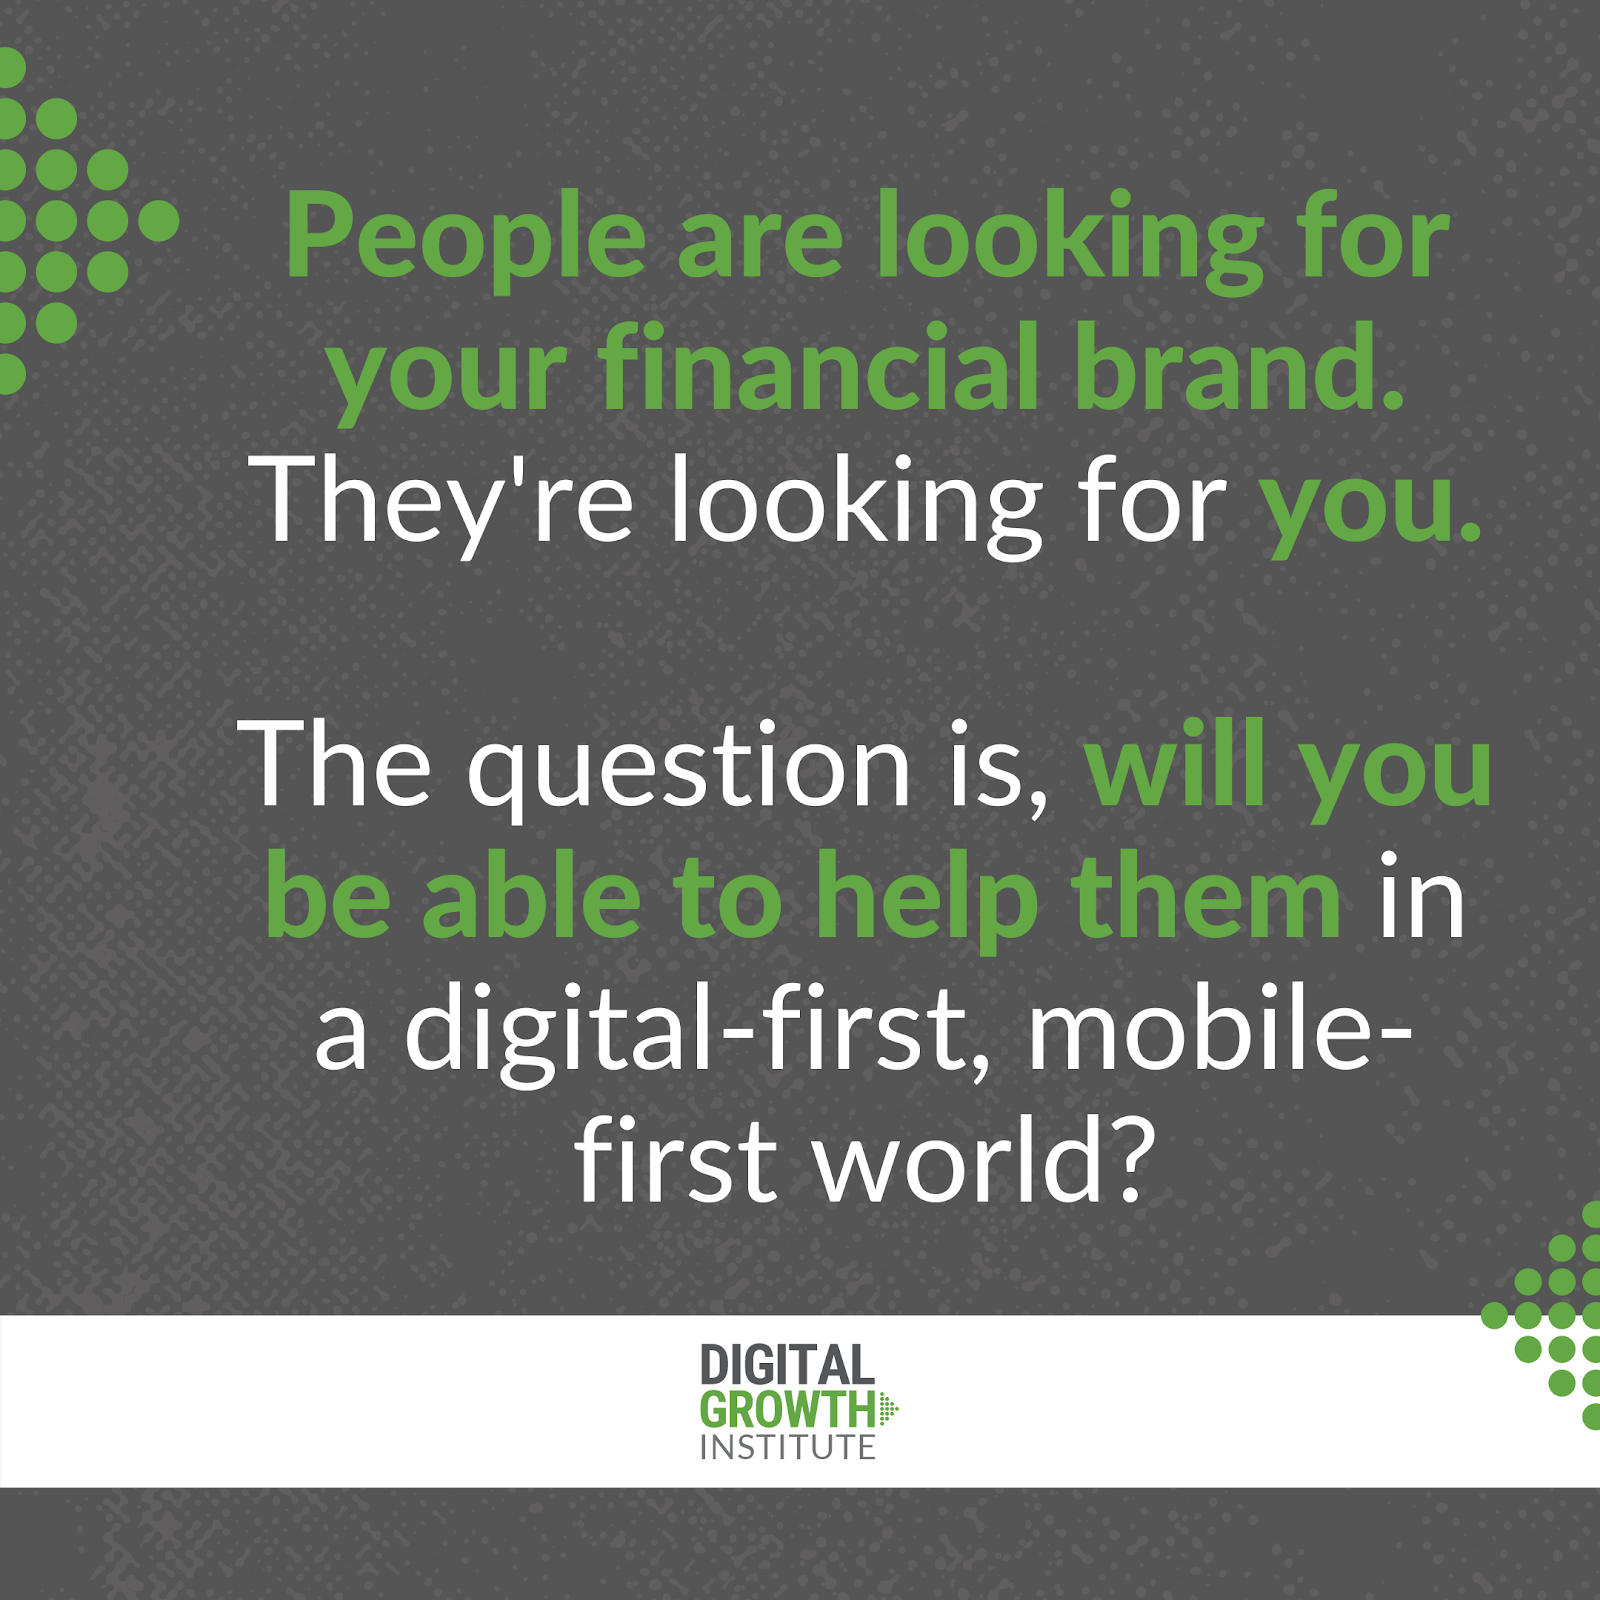 Helping consumers in a digital-first world